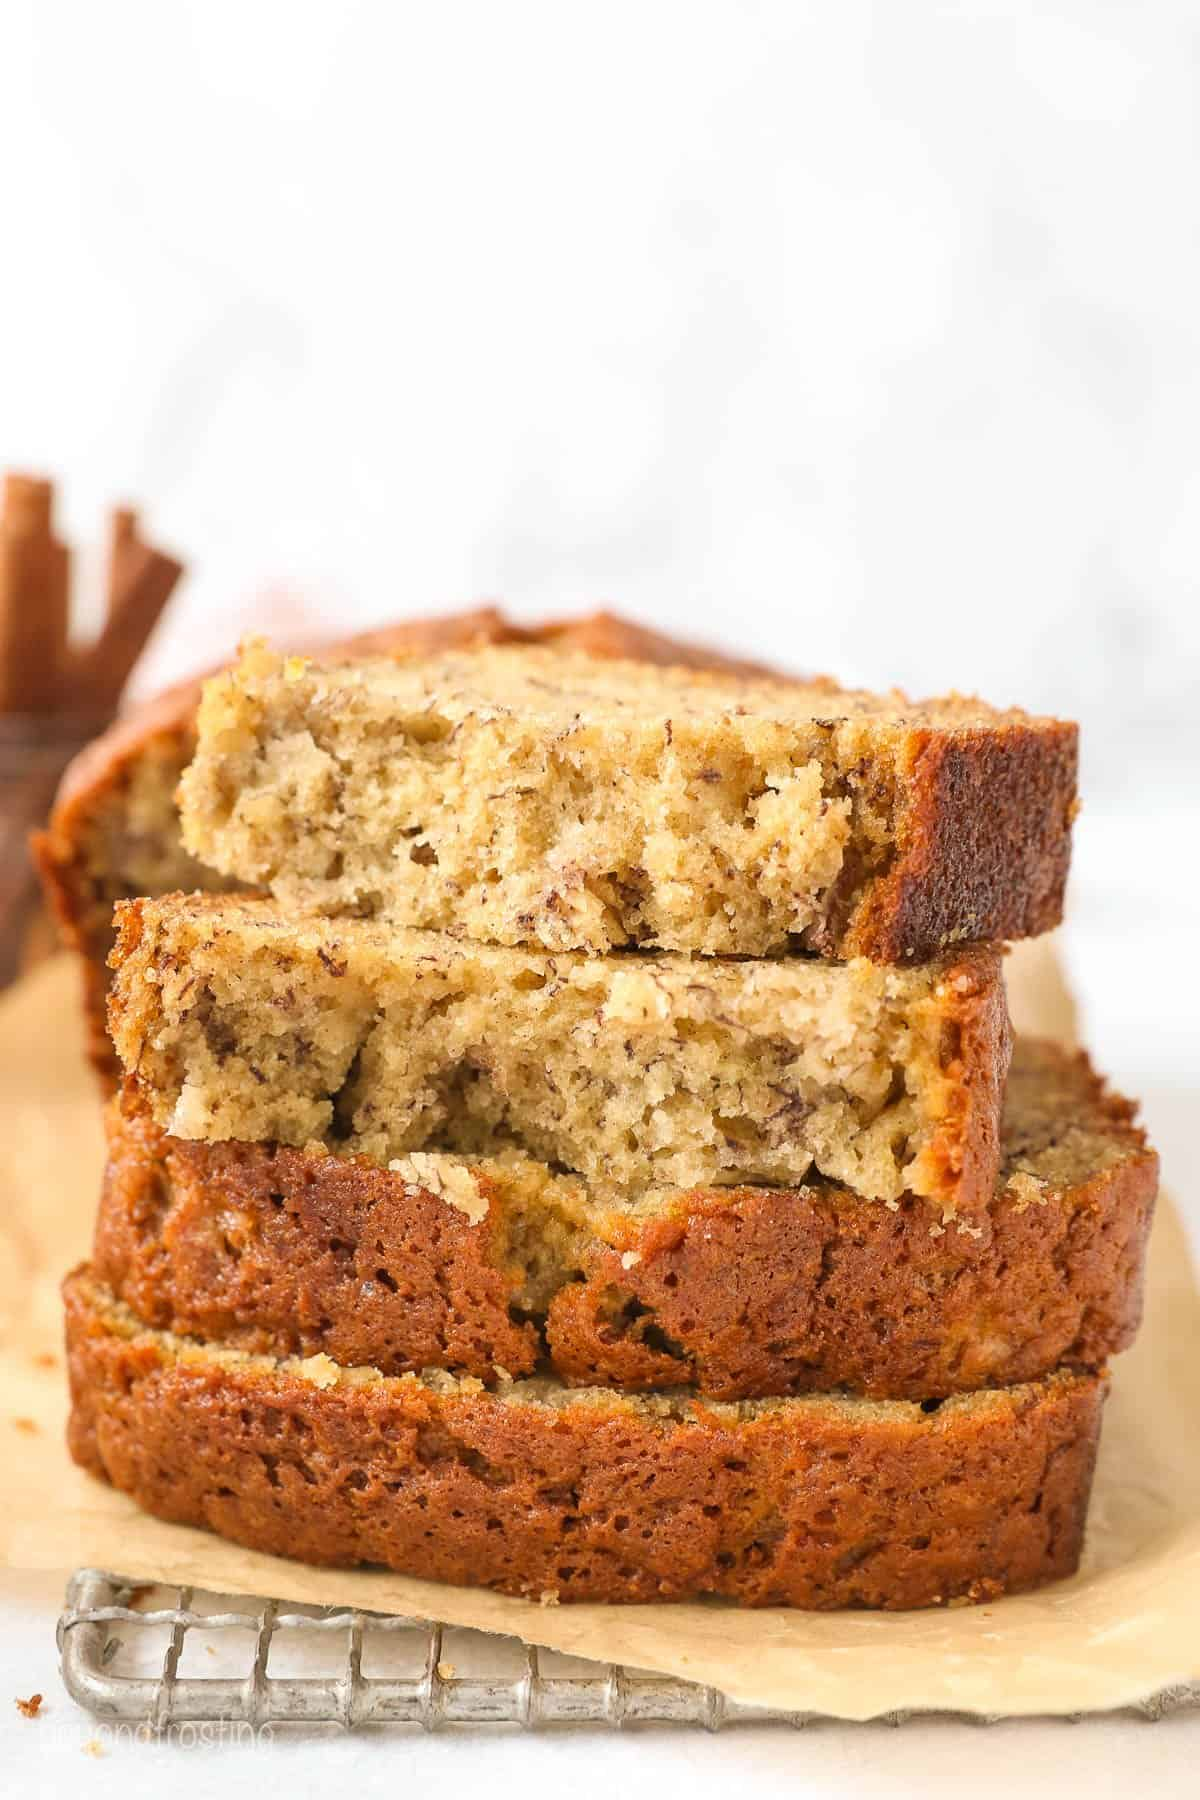 Four thick slices of banana bread stacked on top of each other.